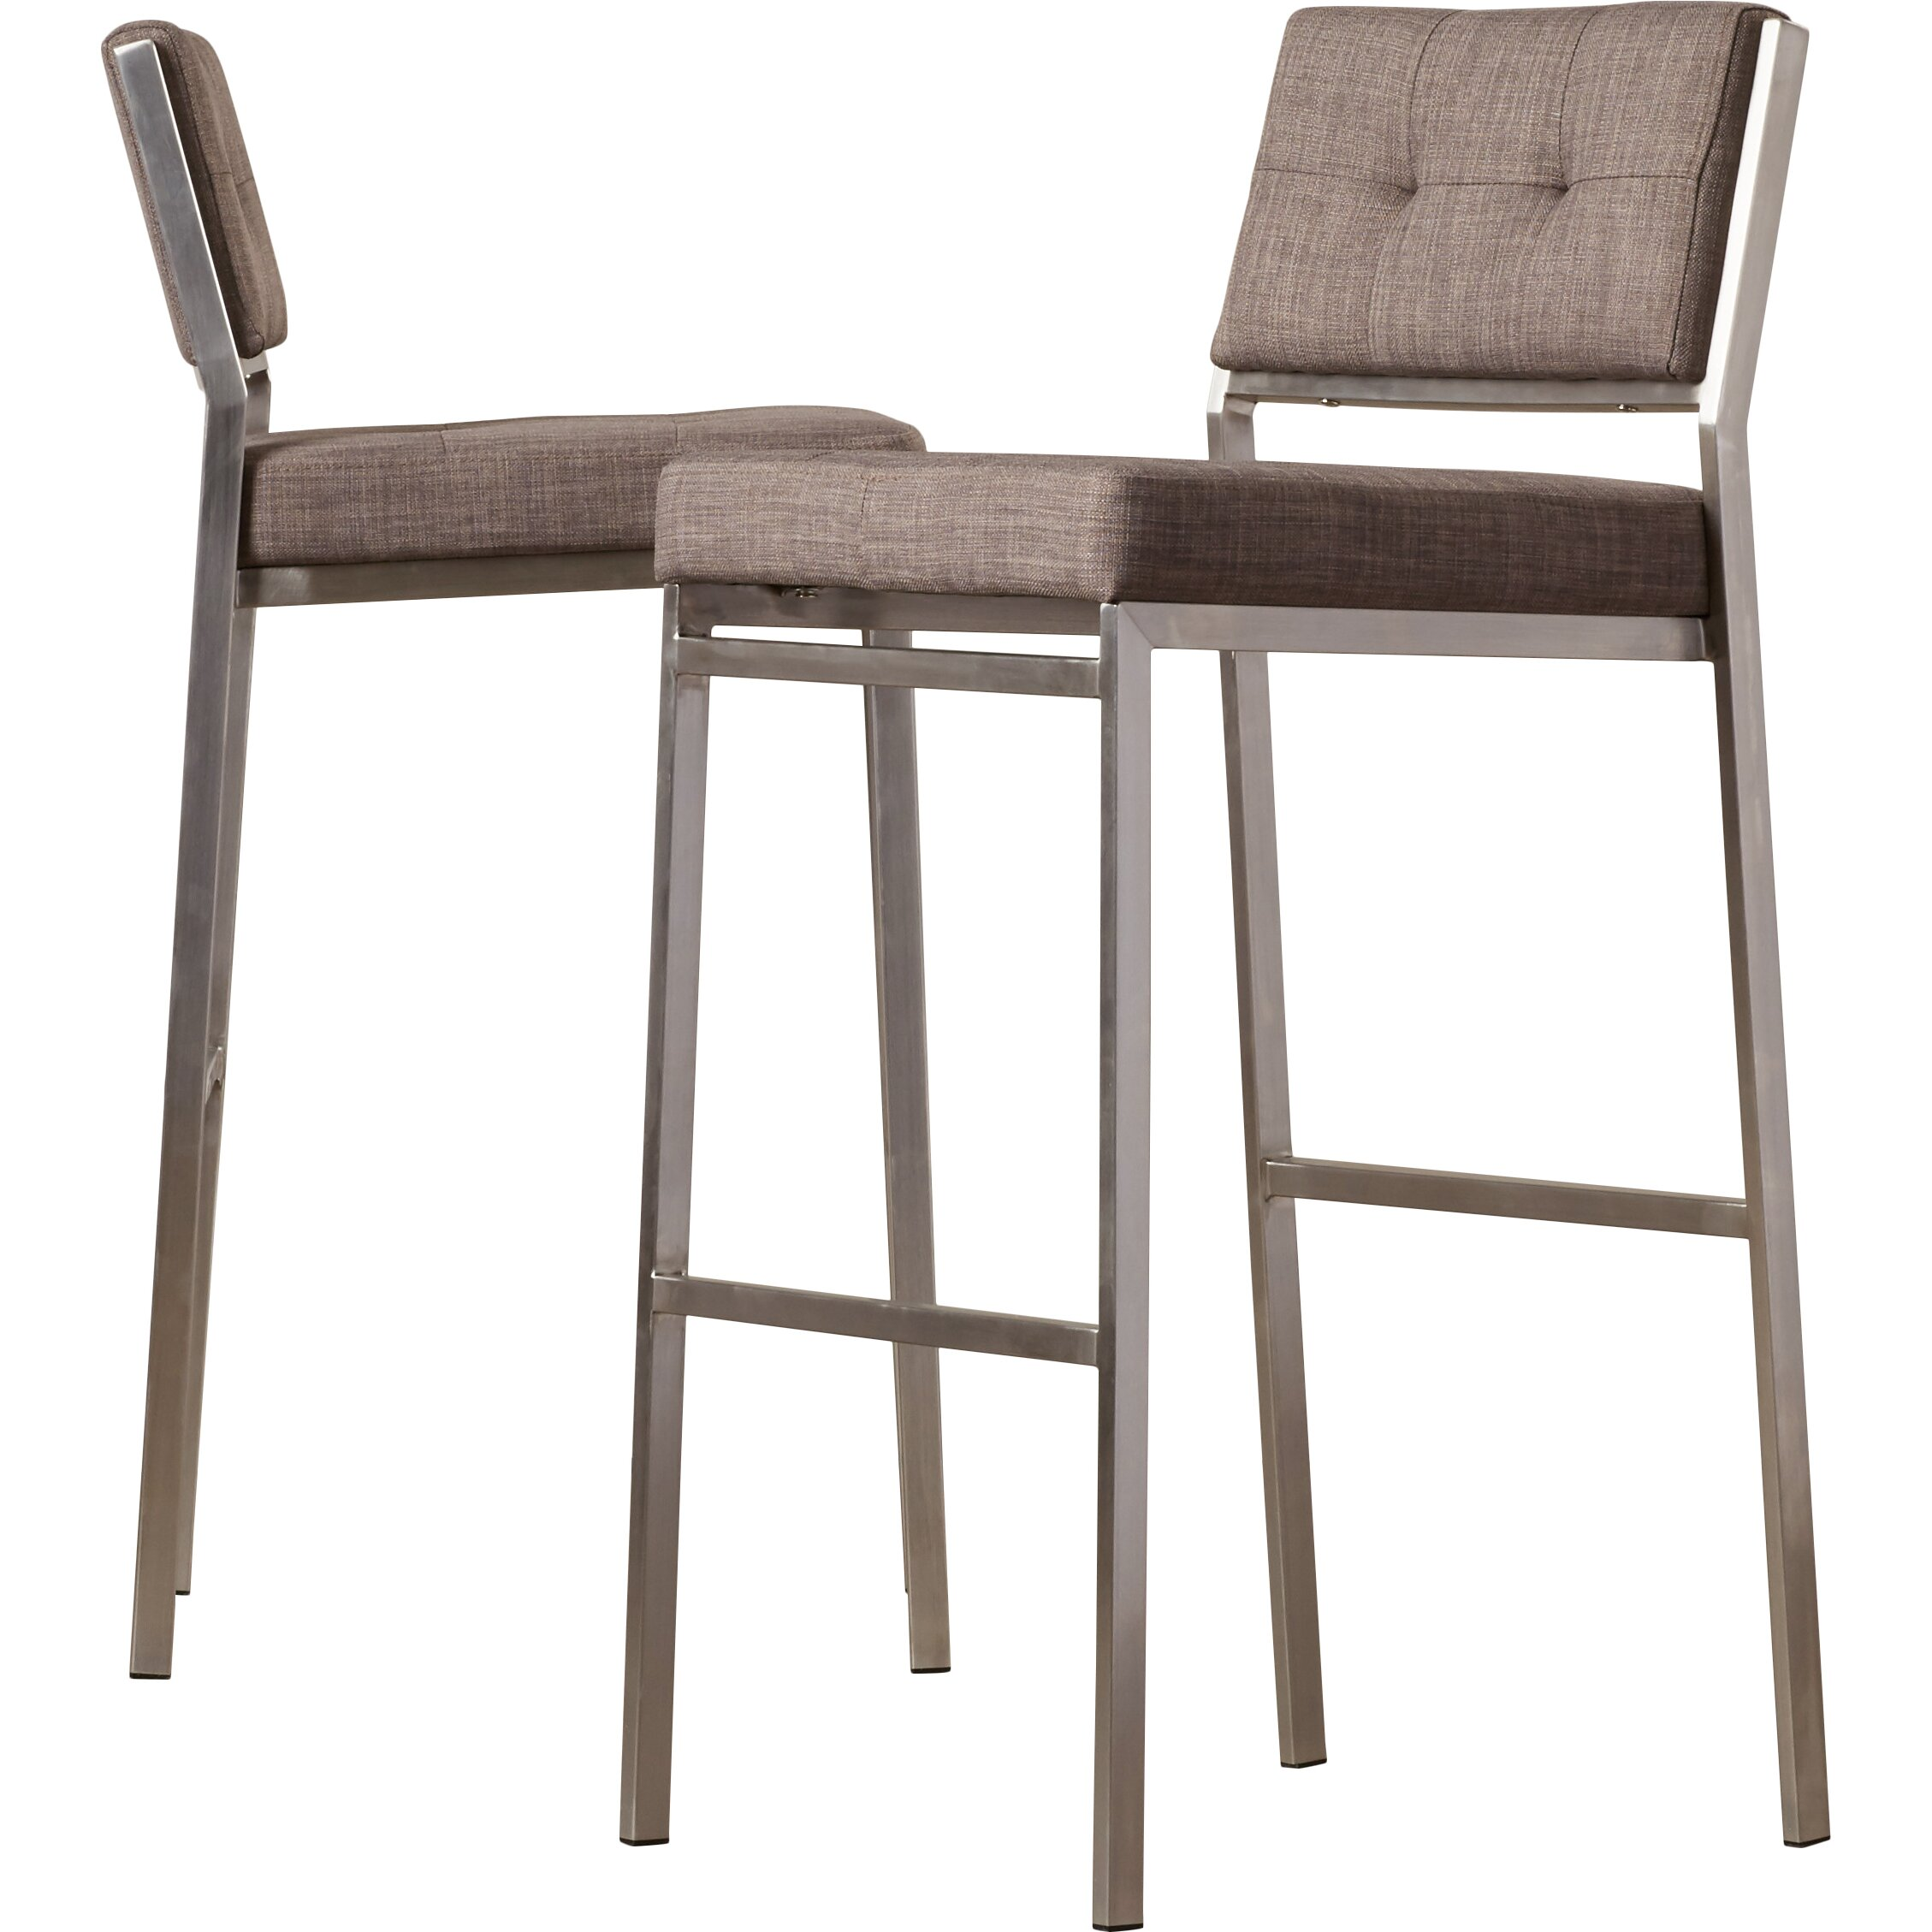 latitude run 30 bar stool with cushion reviews wayfair